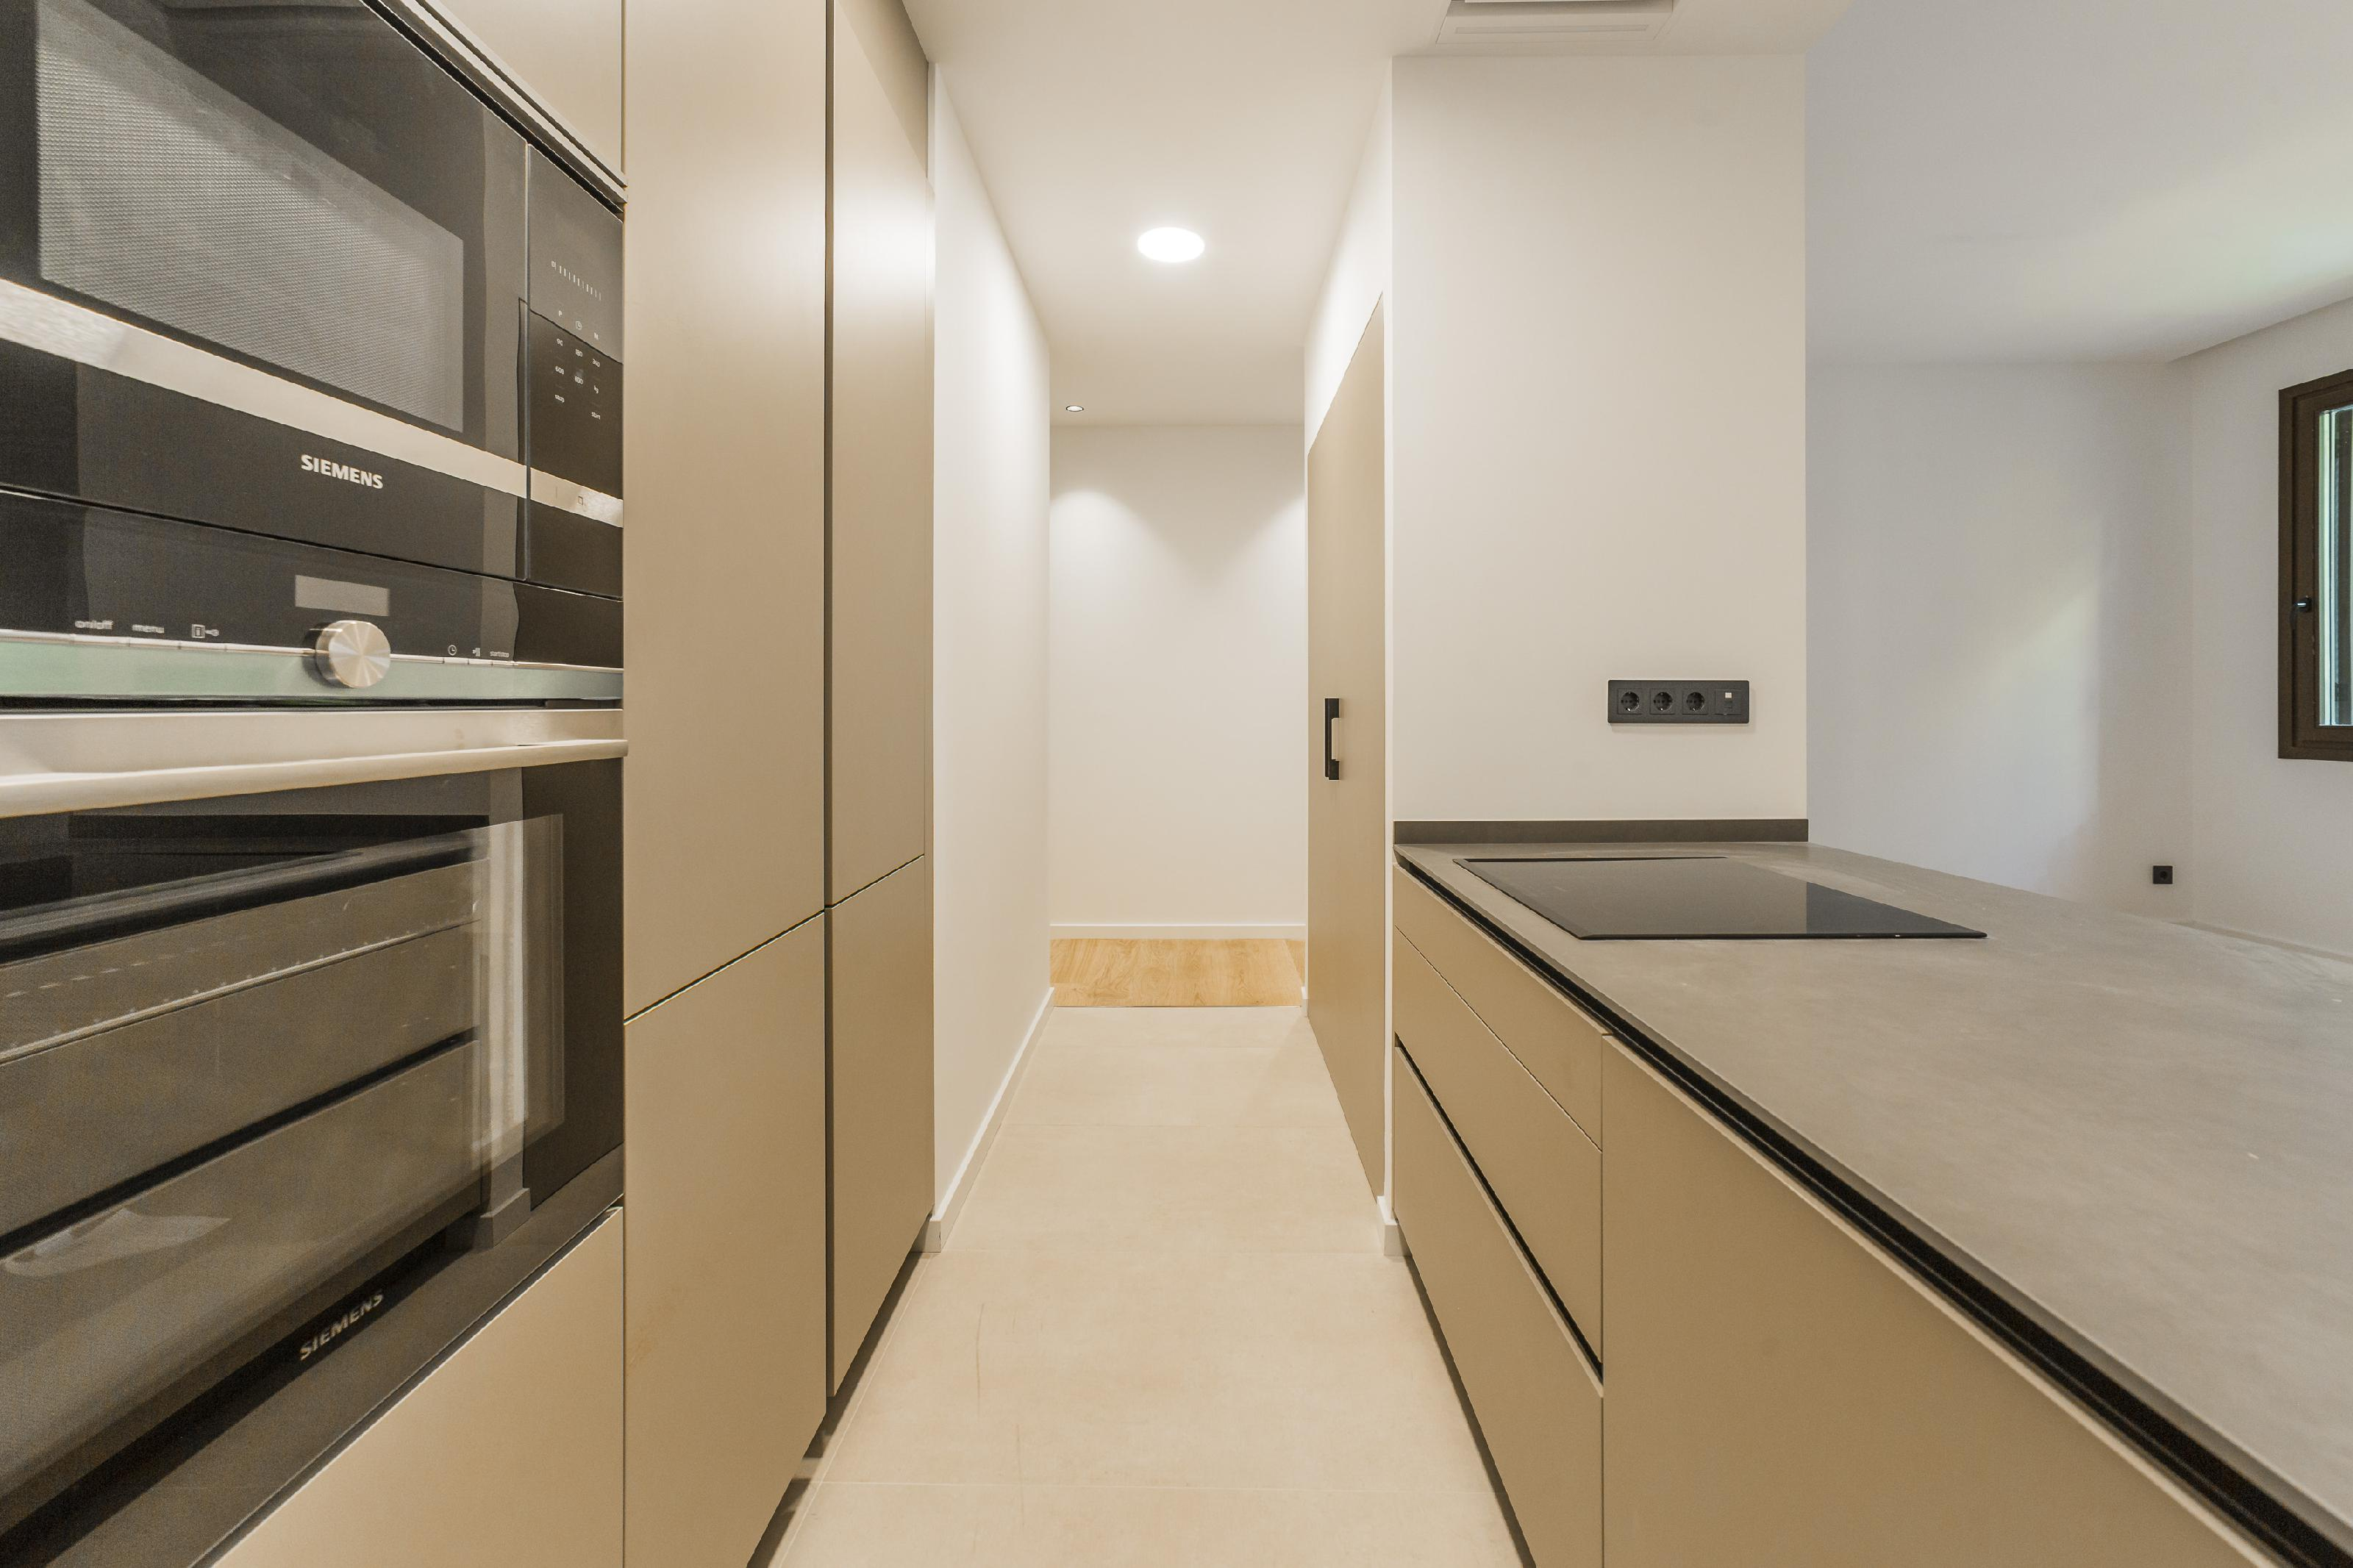 182176 Apartment for sale in Eixample, Old Left Eixample 2